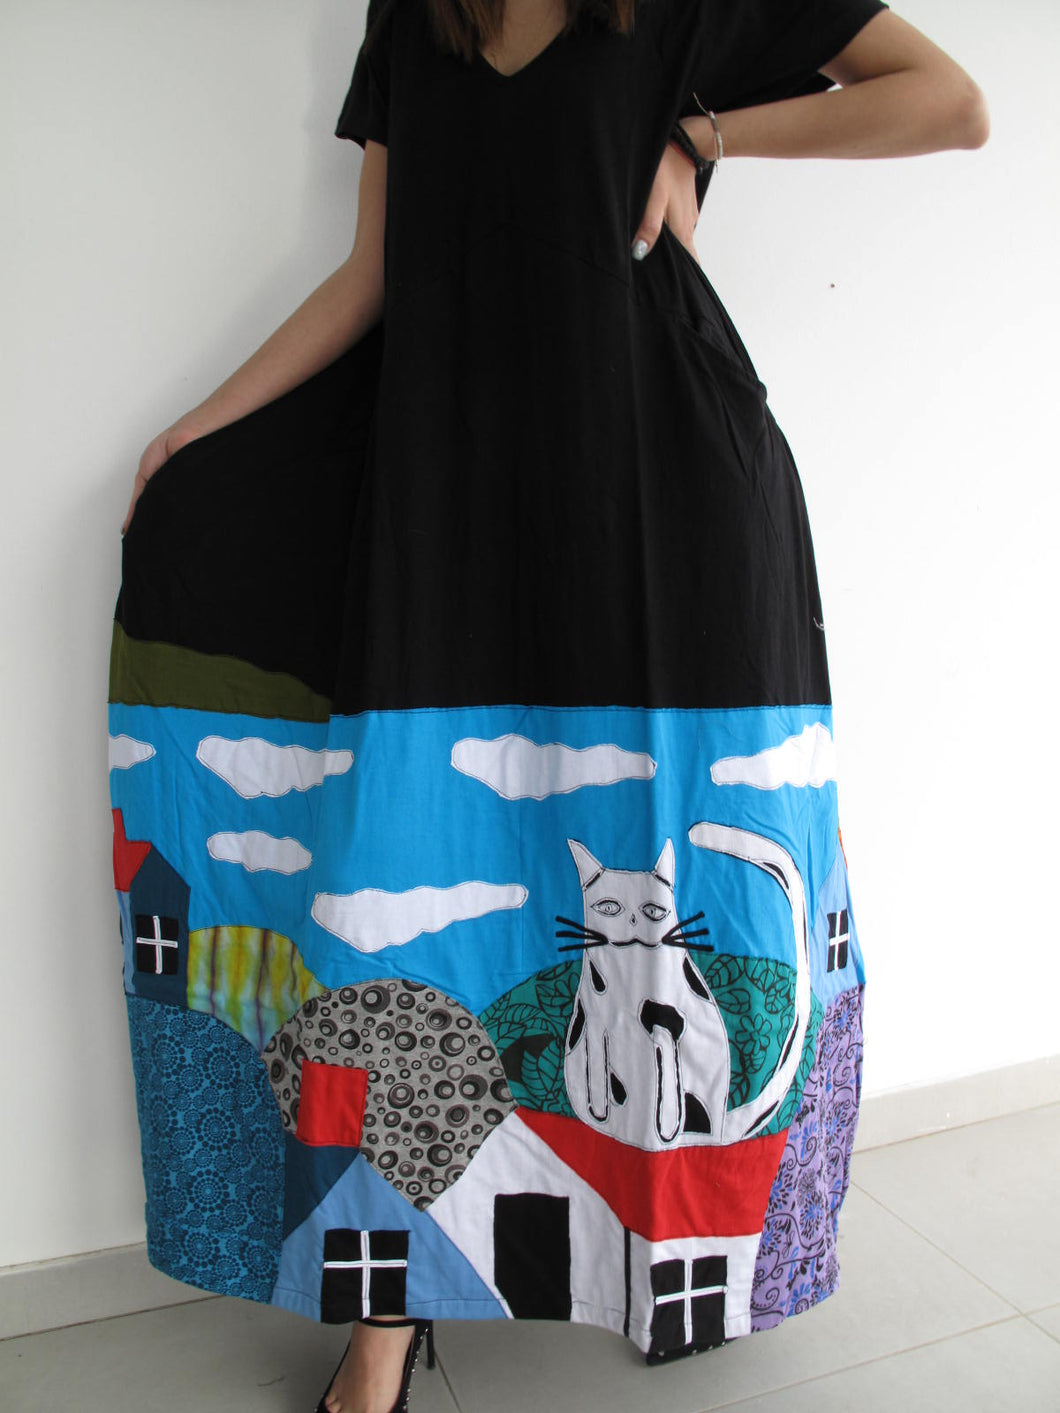 Maxi dress with kittens